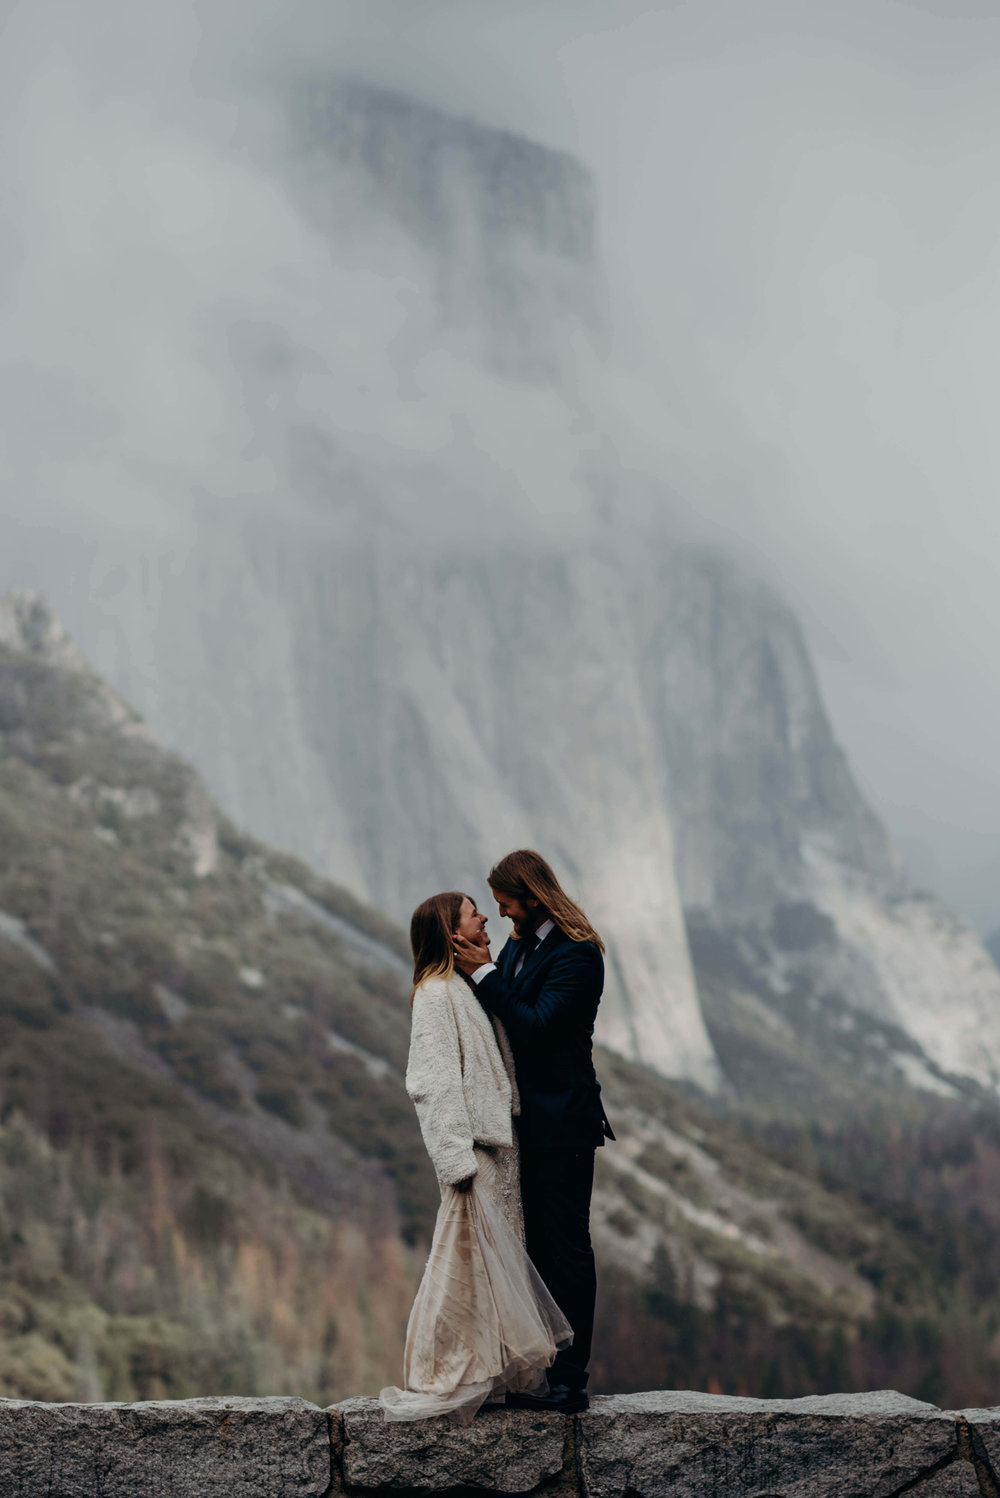 Adventure-Elopement-Yosemite-Tunnelview-5.jpg